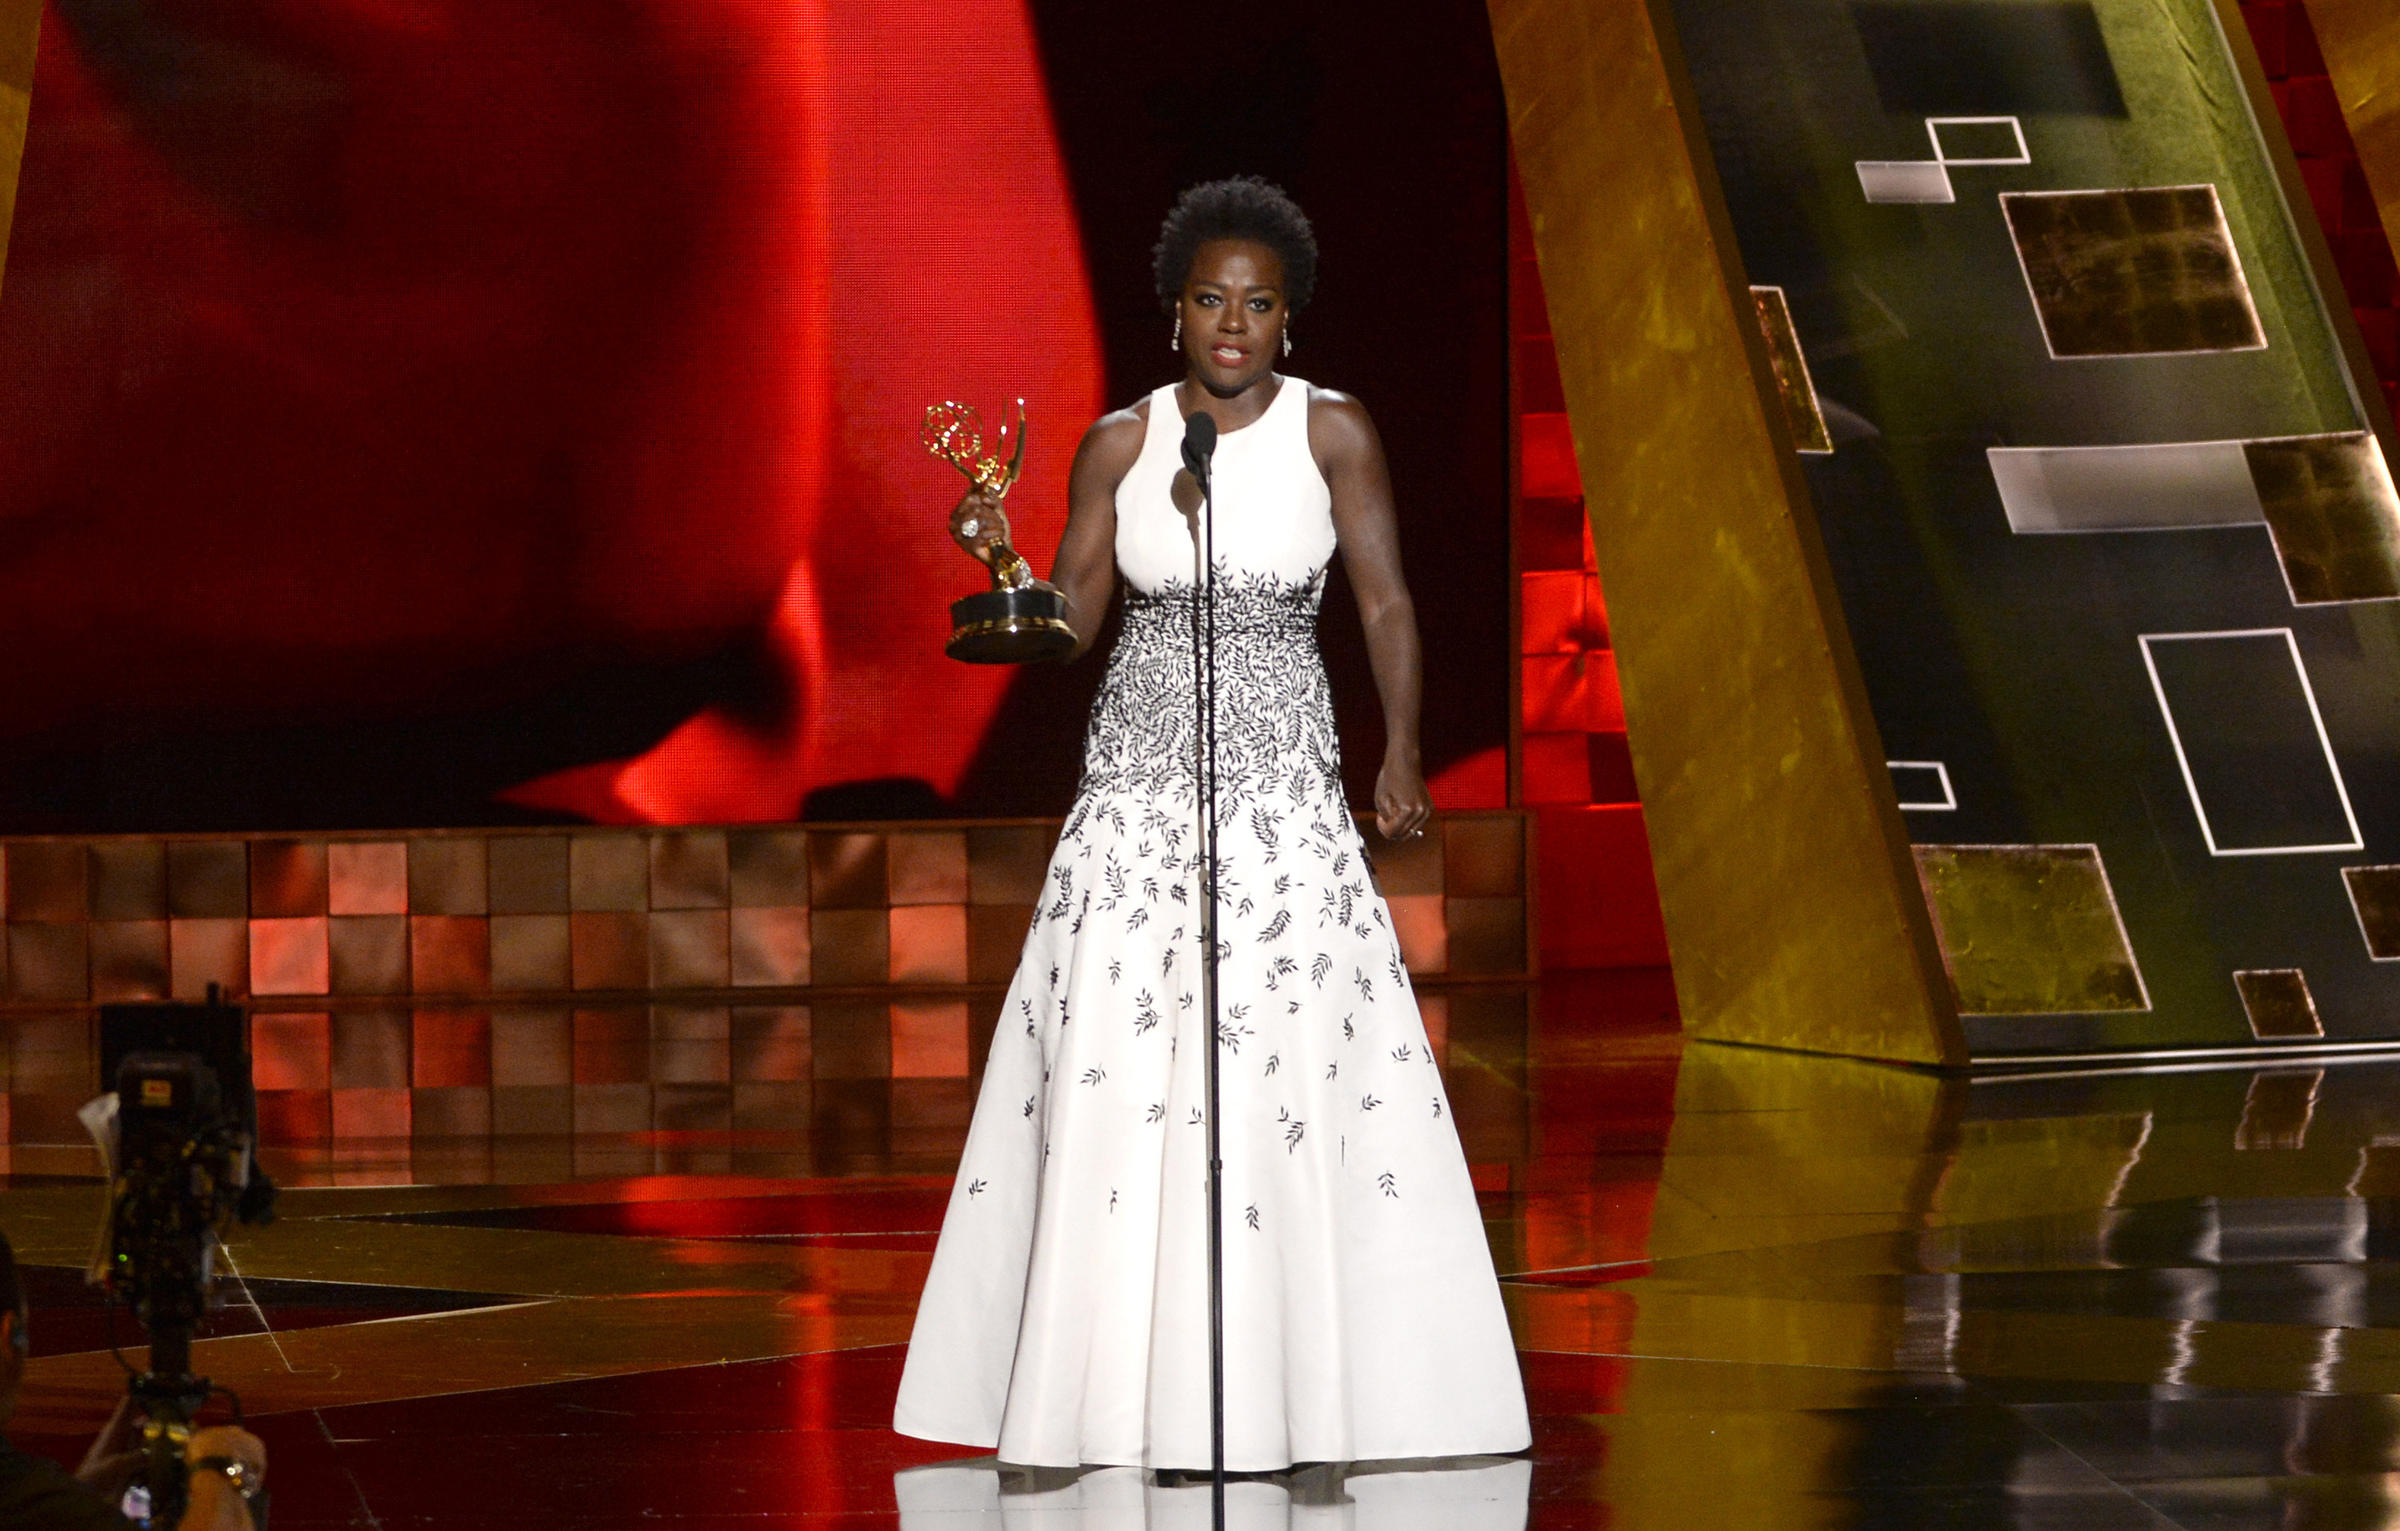 Viola Davis Accepts The Emmy For Outstanding Lead Actress In A Drama Series  For How To Get Away With Murder At The 67th Primetime Emmy Awards On Sunday  In